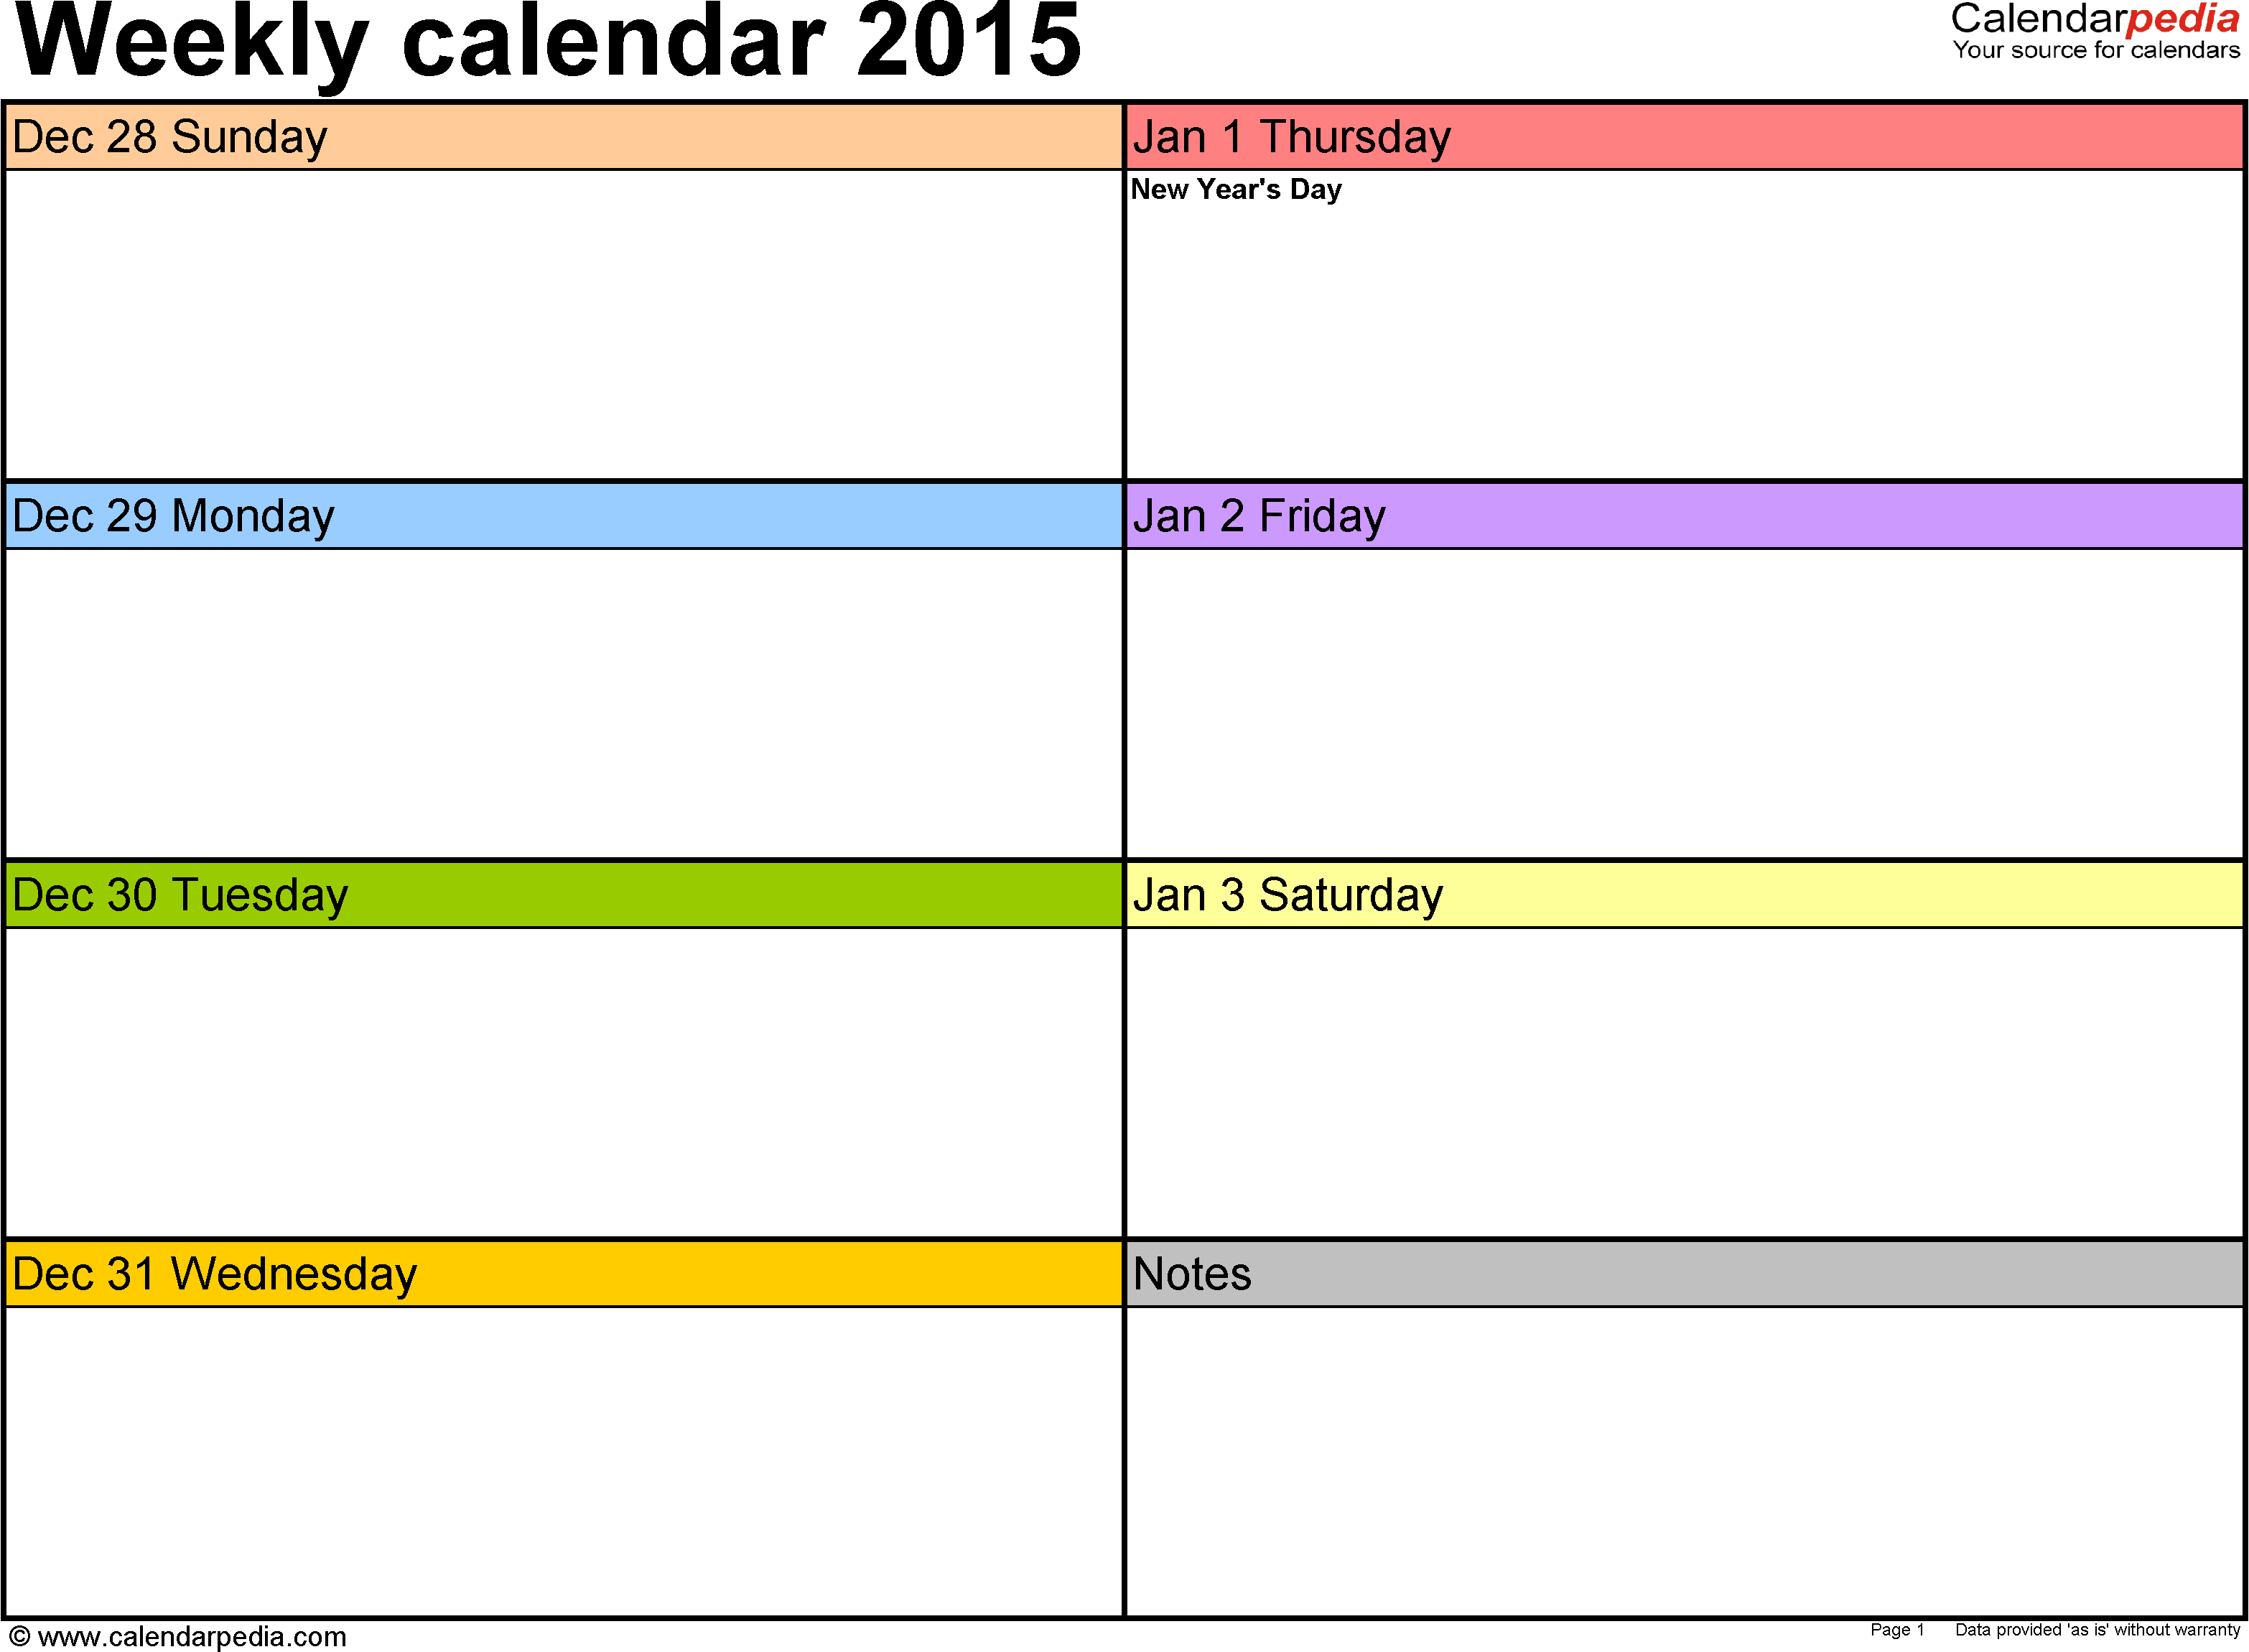 Weekly calendar 2015: template for Excel version 6, landscape, 53 pages, in color, week divided into 2 columns (7 days and one field for notes)